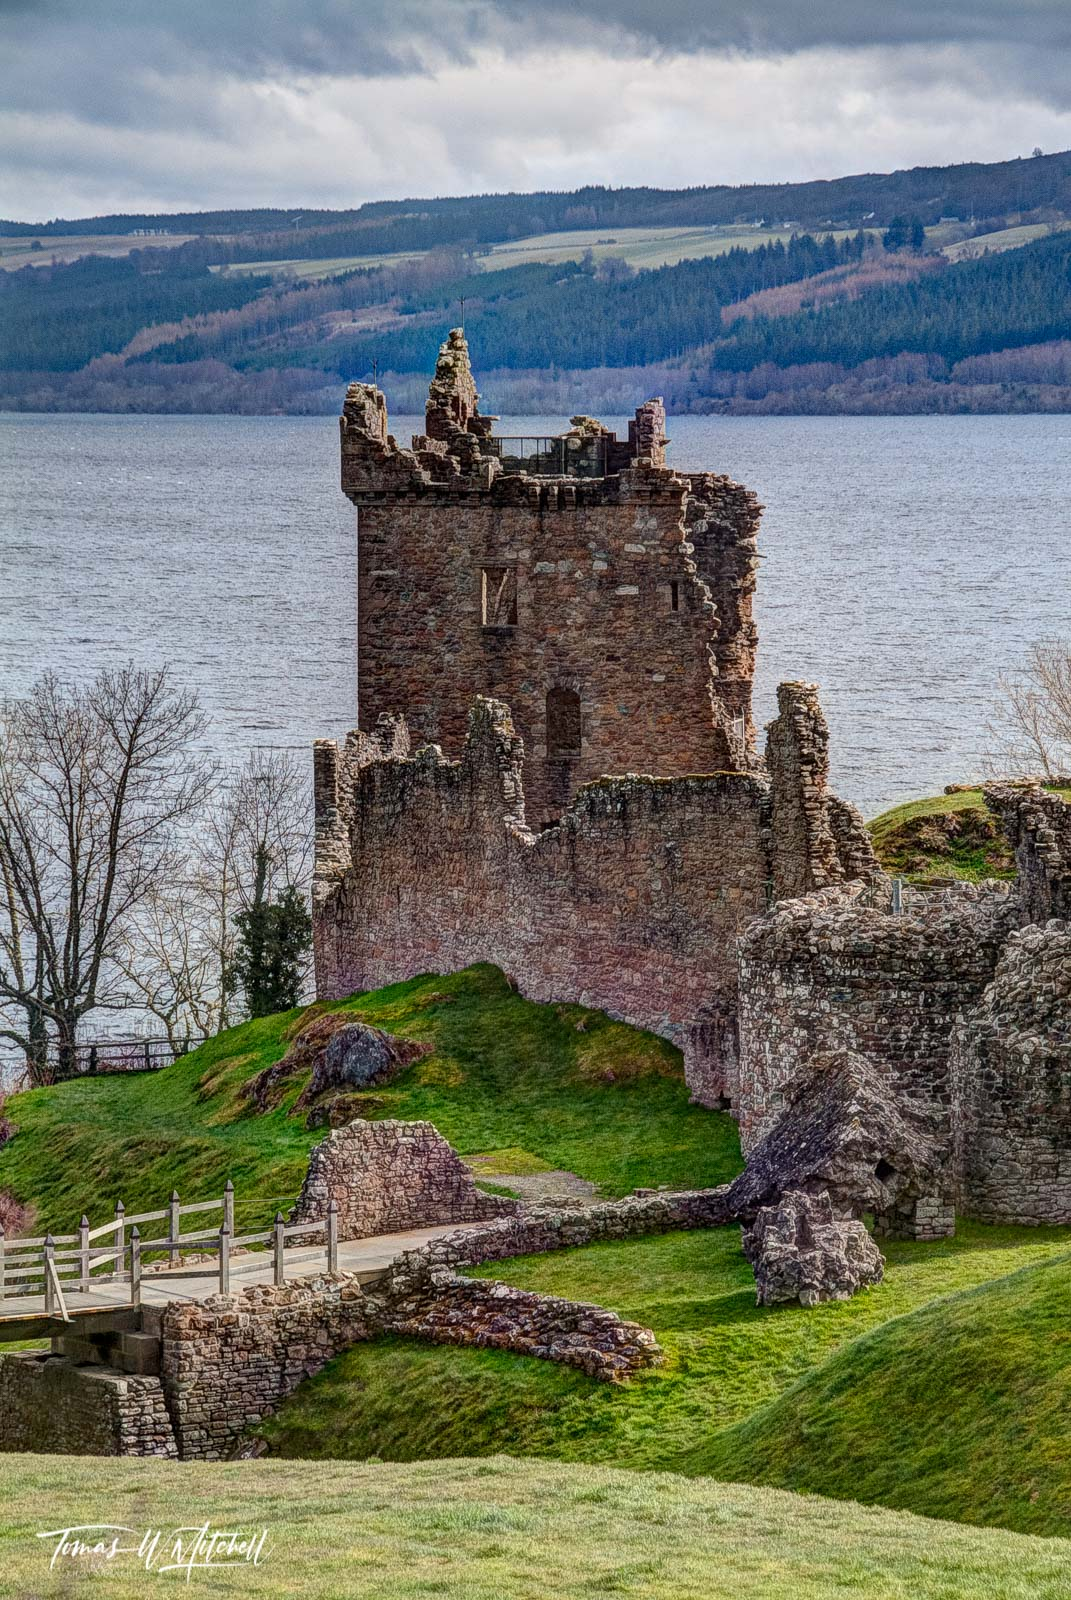 limited edition, fine art, prints urquhart, castle, loch ness, scotland, fortress, highlands, rock, loch, photograph, green, grass, cloudy, sky, bridge, path, rocks, waves, water, photo